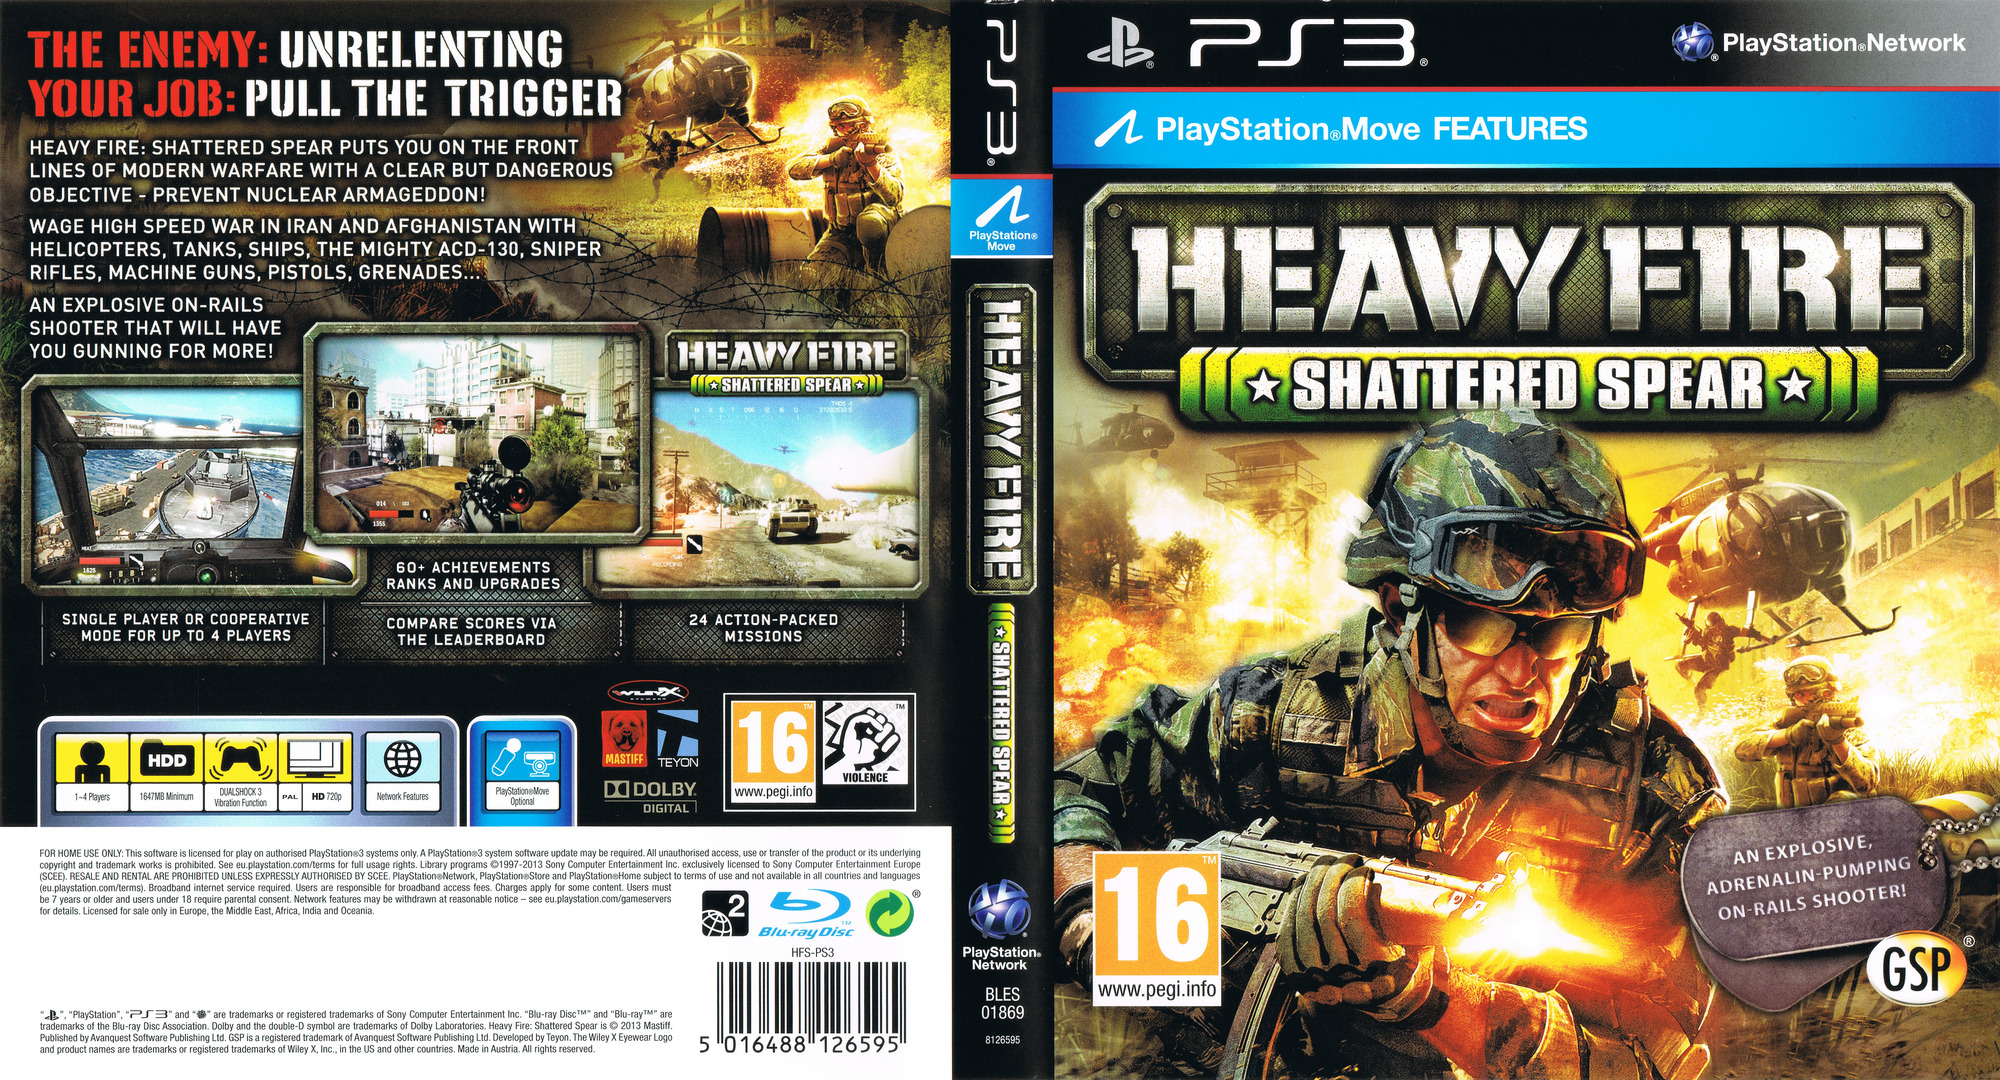 Heavy Fire: Shattered Spear PS3 coverfullHQ (BLES01869)